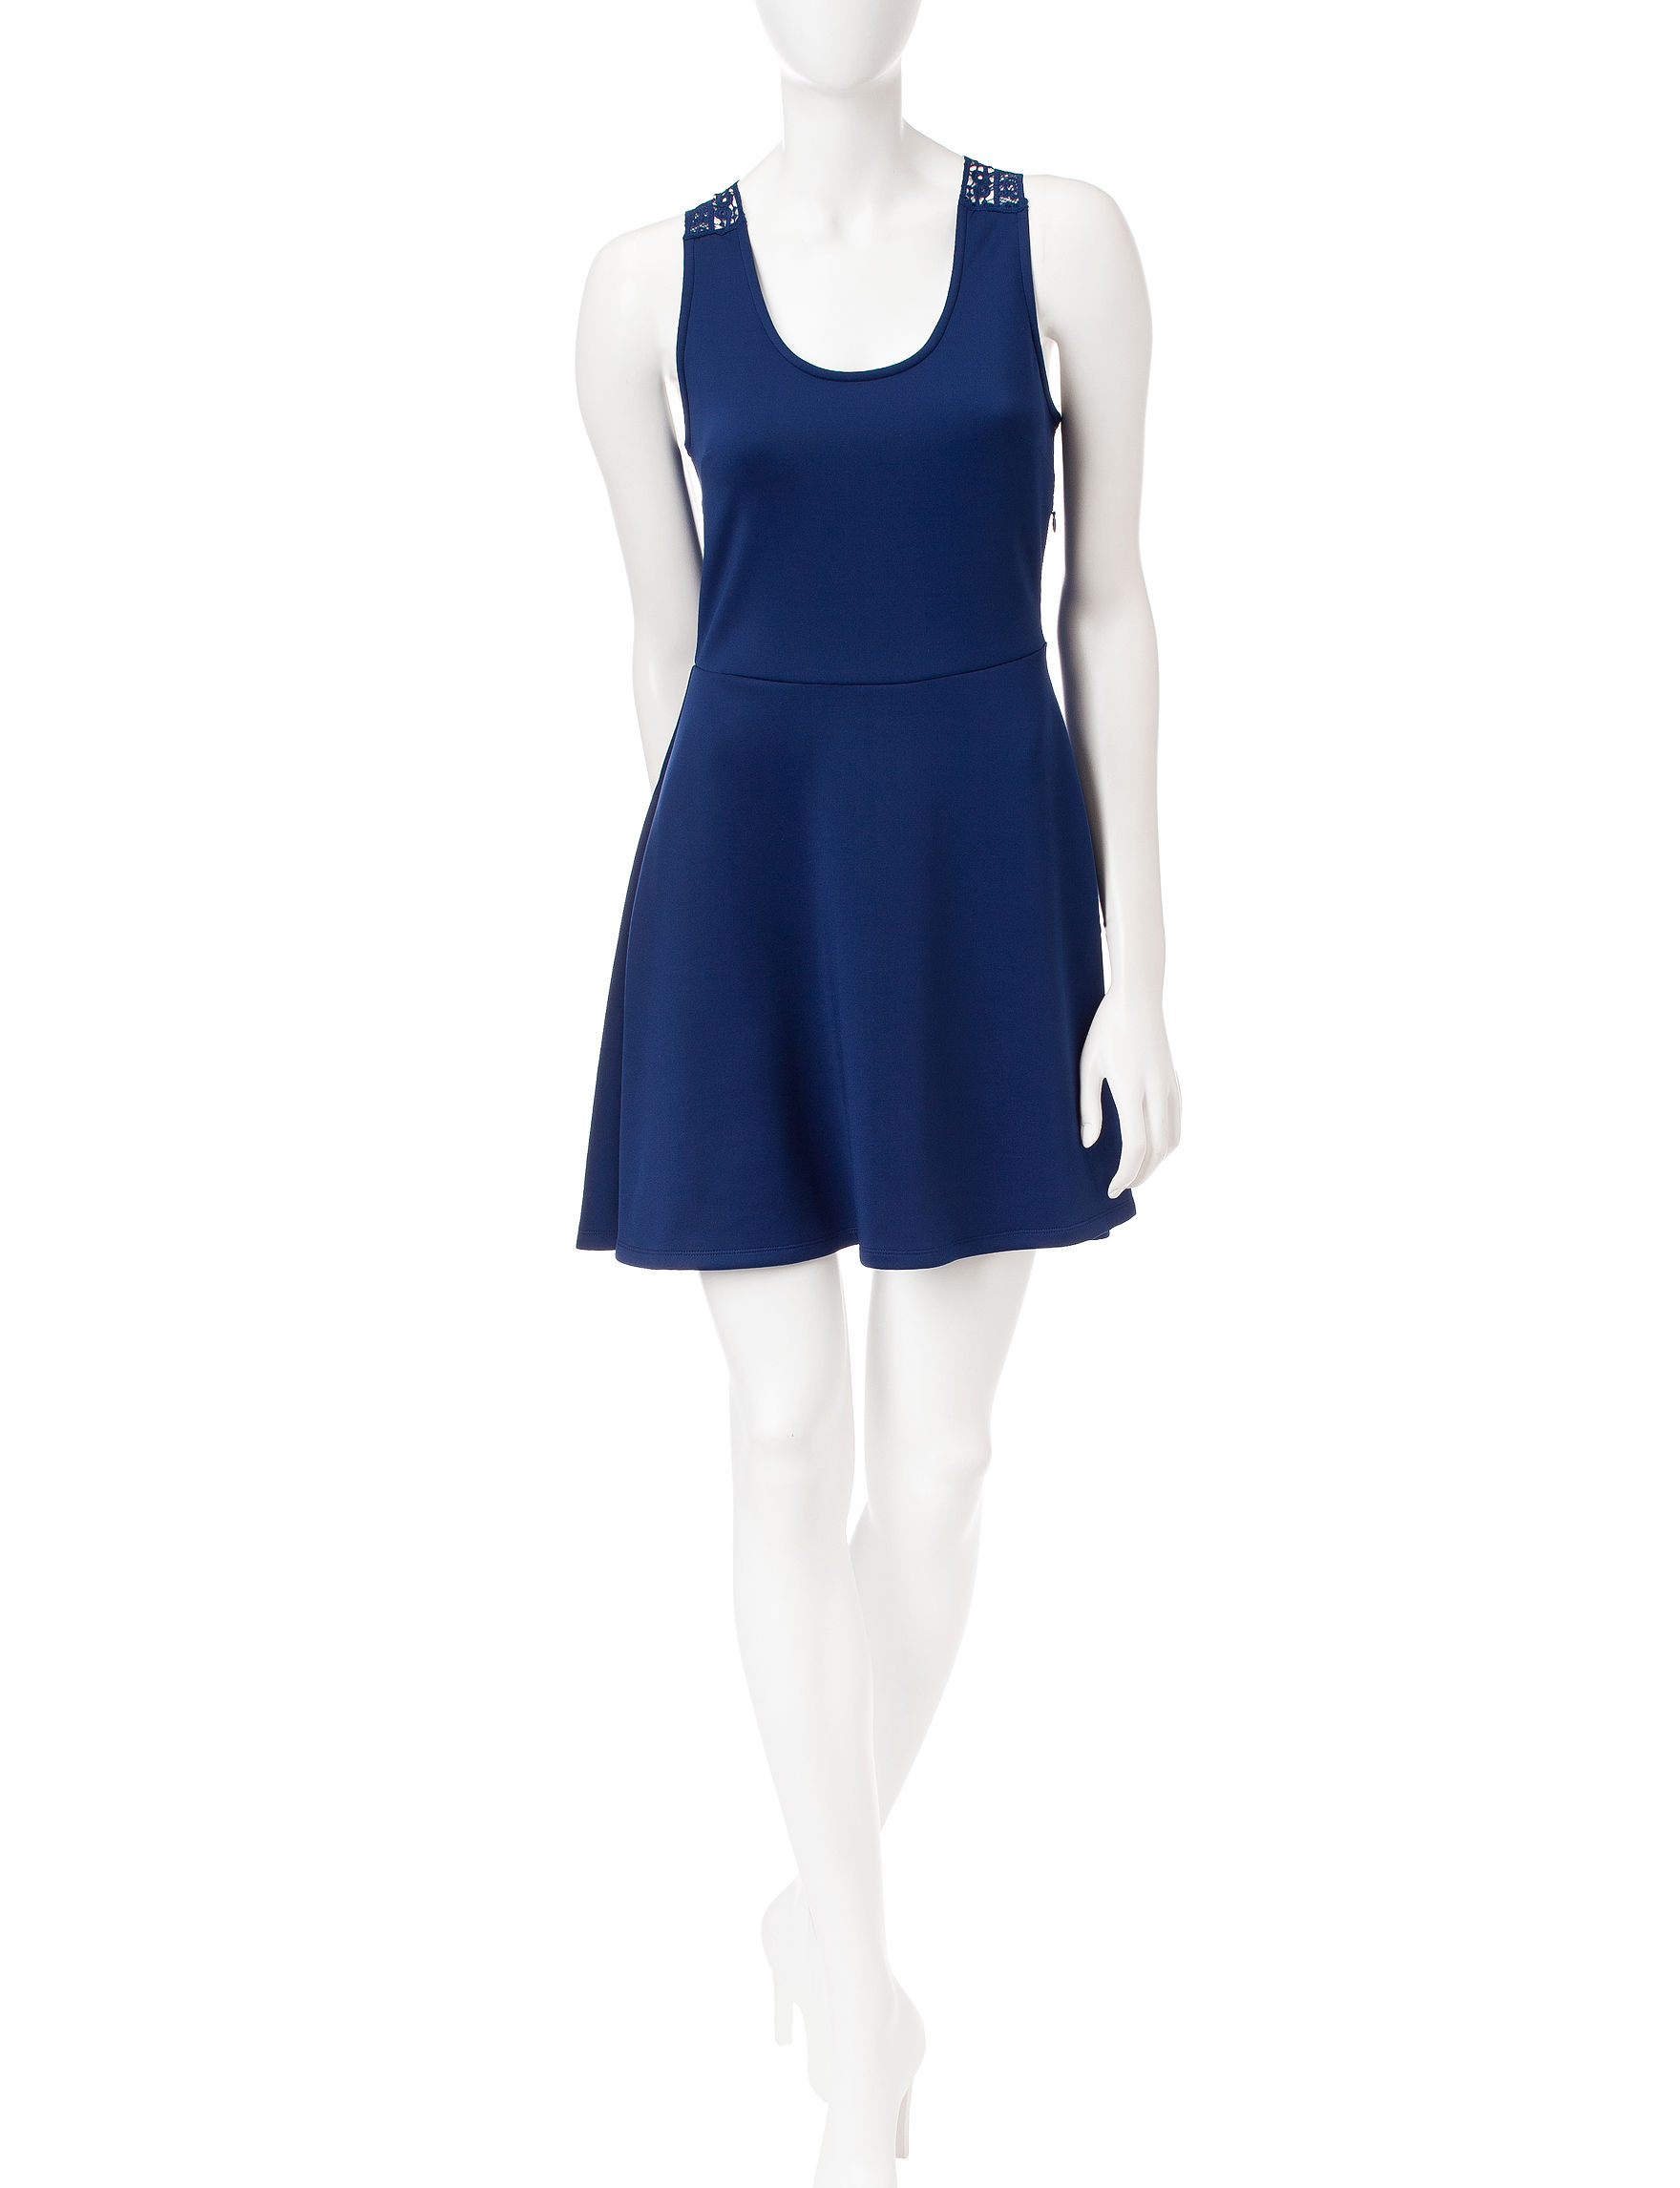 Wishful Park Navy Everyday & Casual Fit & Flare Dresses